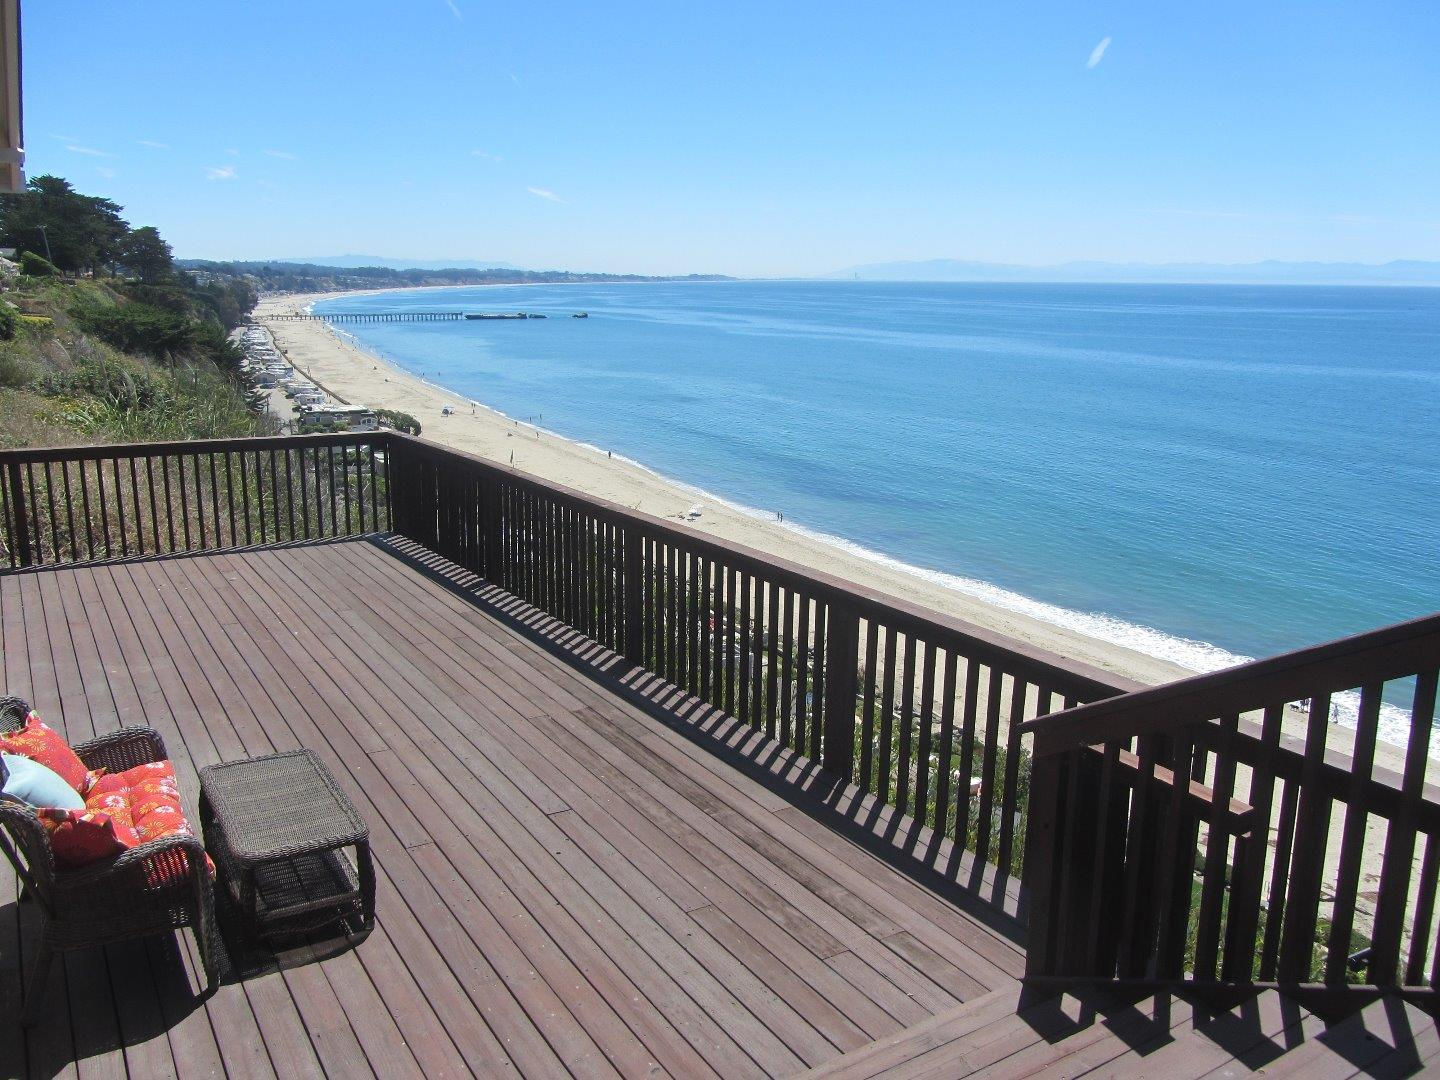 Single Family Home for Sale at 739 Seacliff Drive Aptos, California 95003 United States